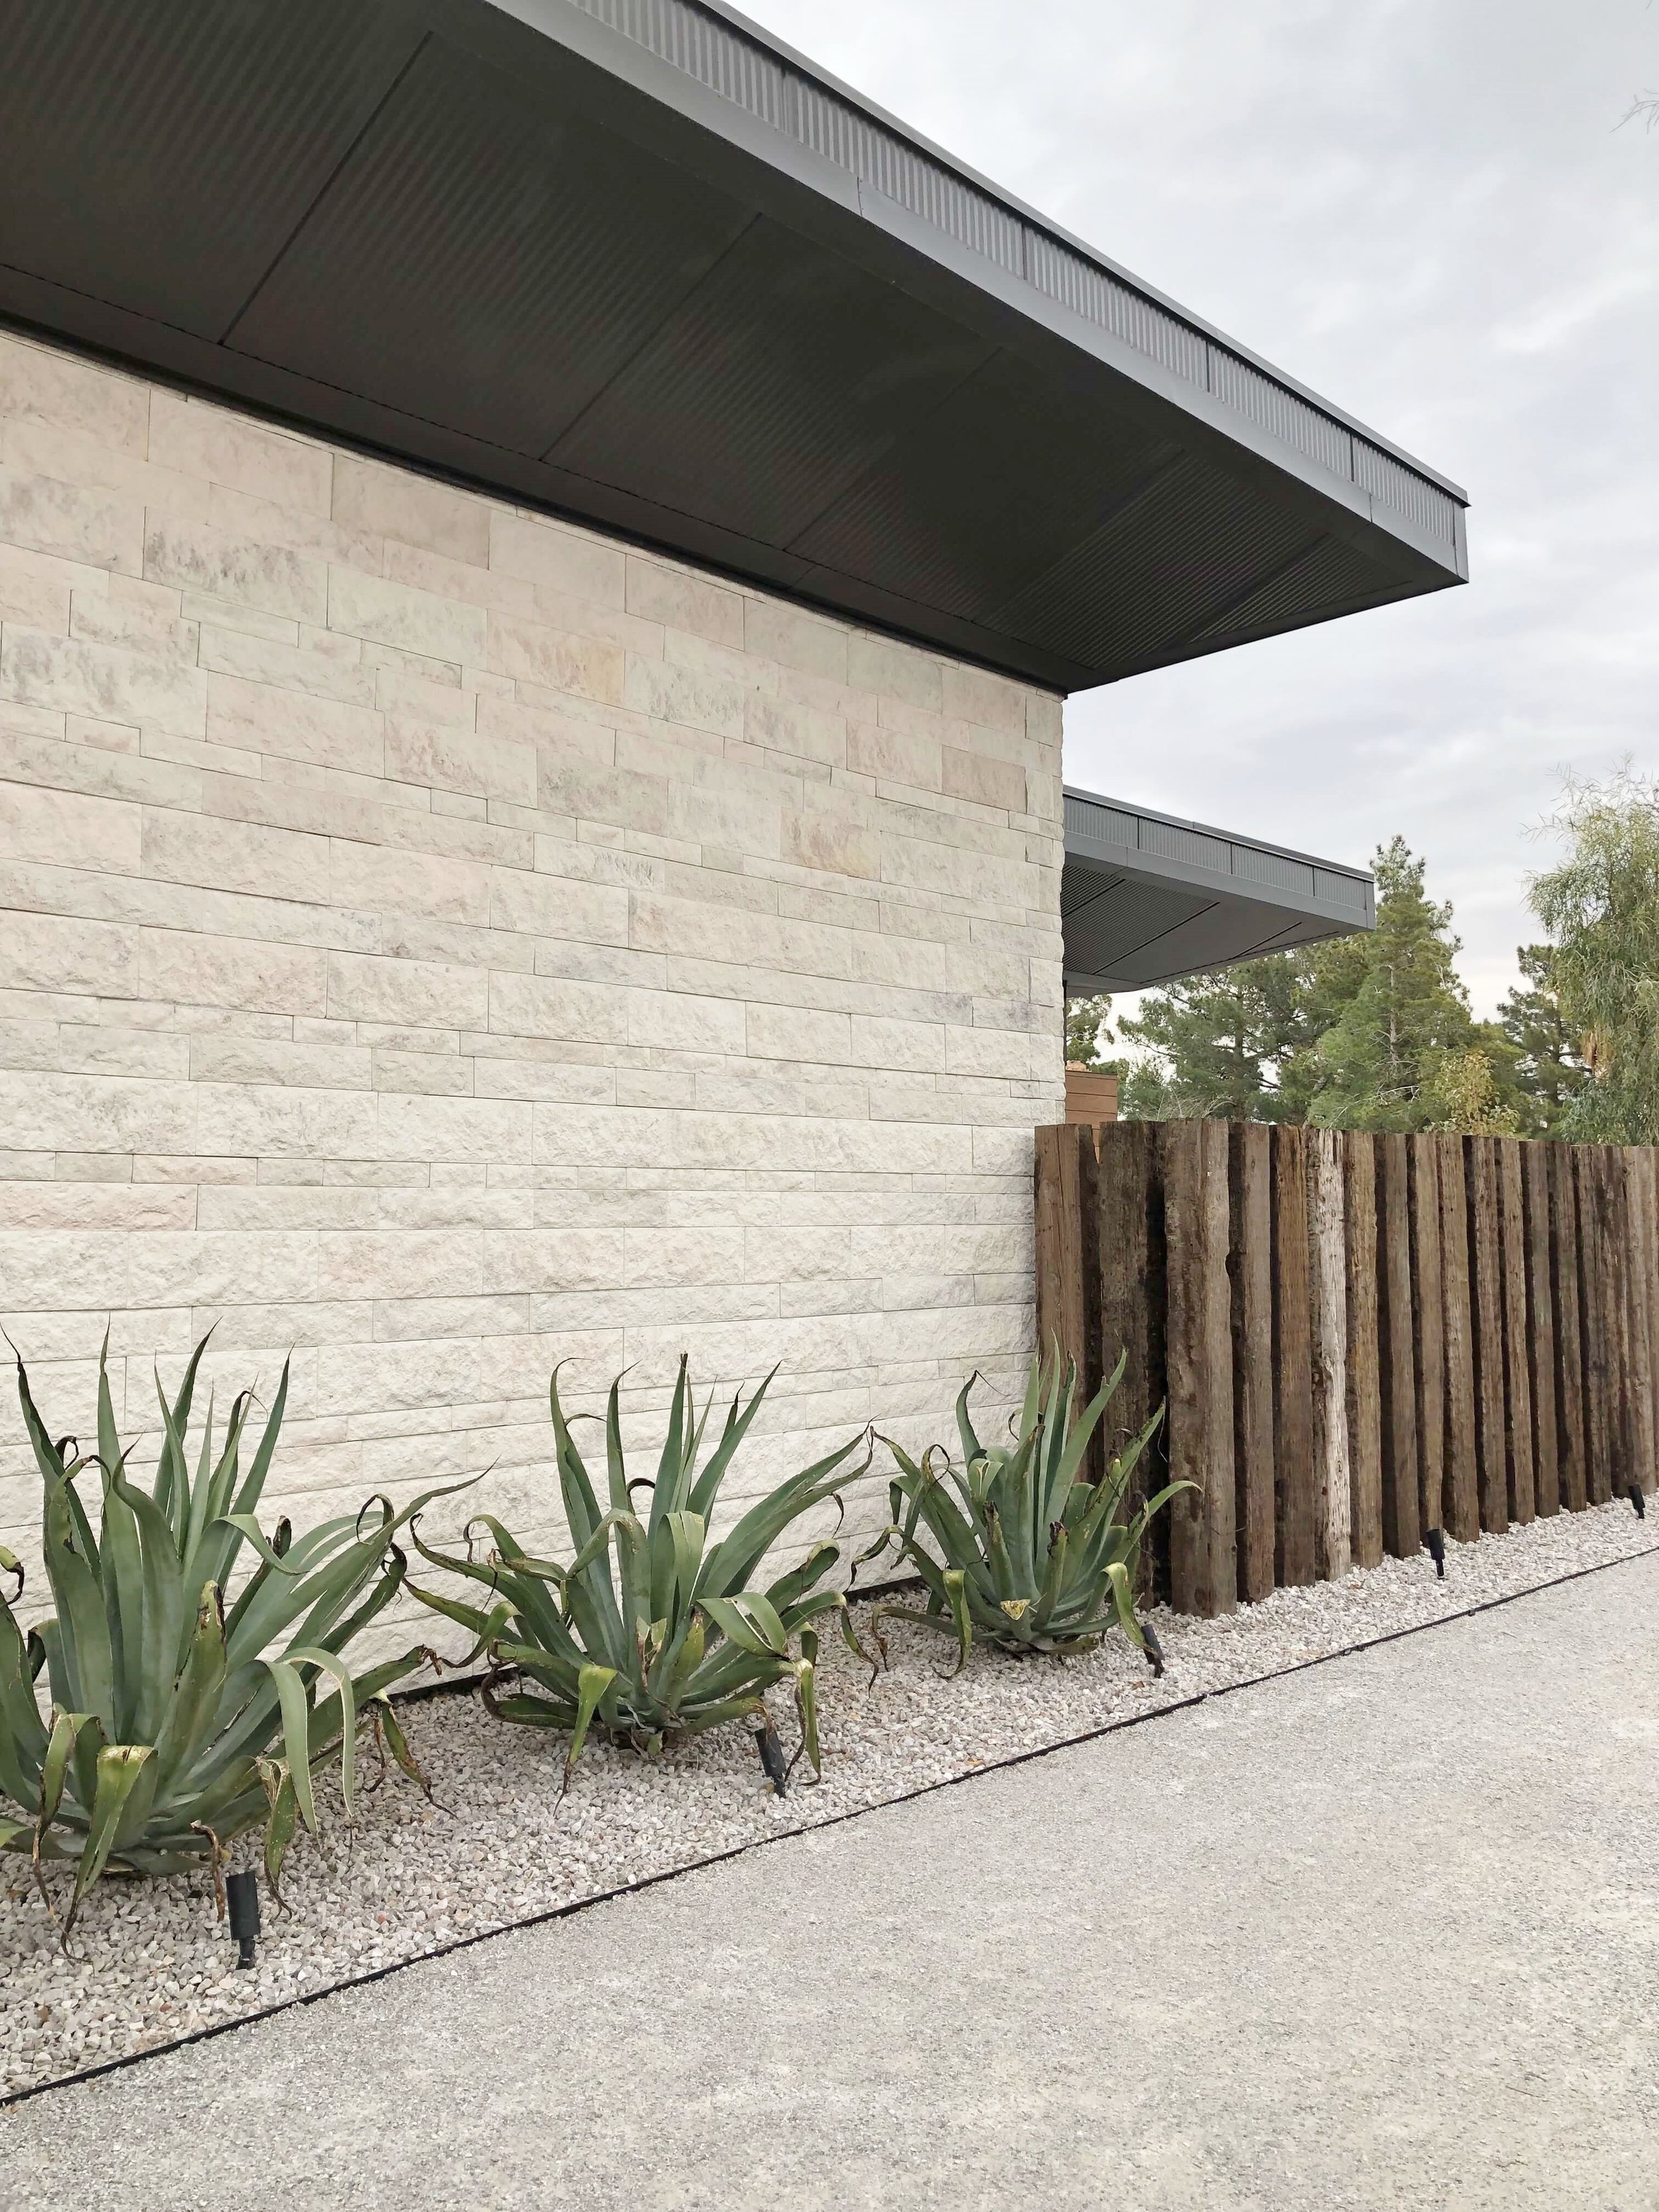 Stone walls, rugged railroad tie vertical fencing, gravel and succulents form the exterior views of the house from the street. The New American Remodel 2019 #hometour #railroadties #contemporaryhome